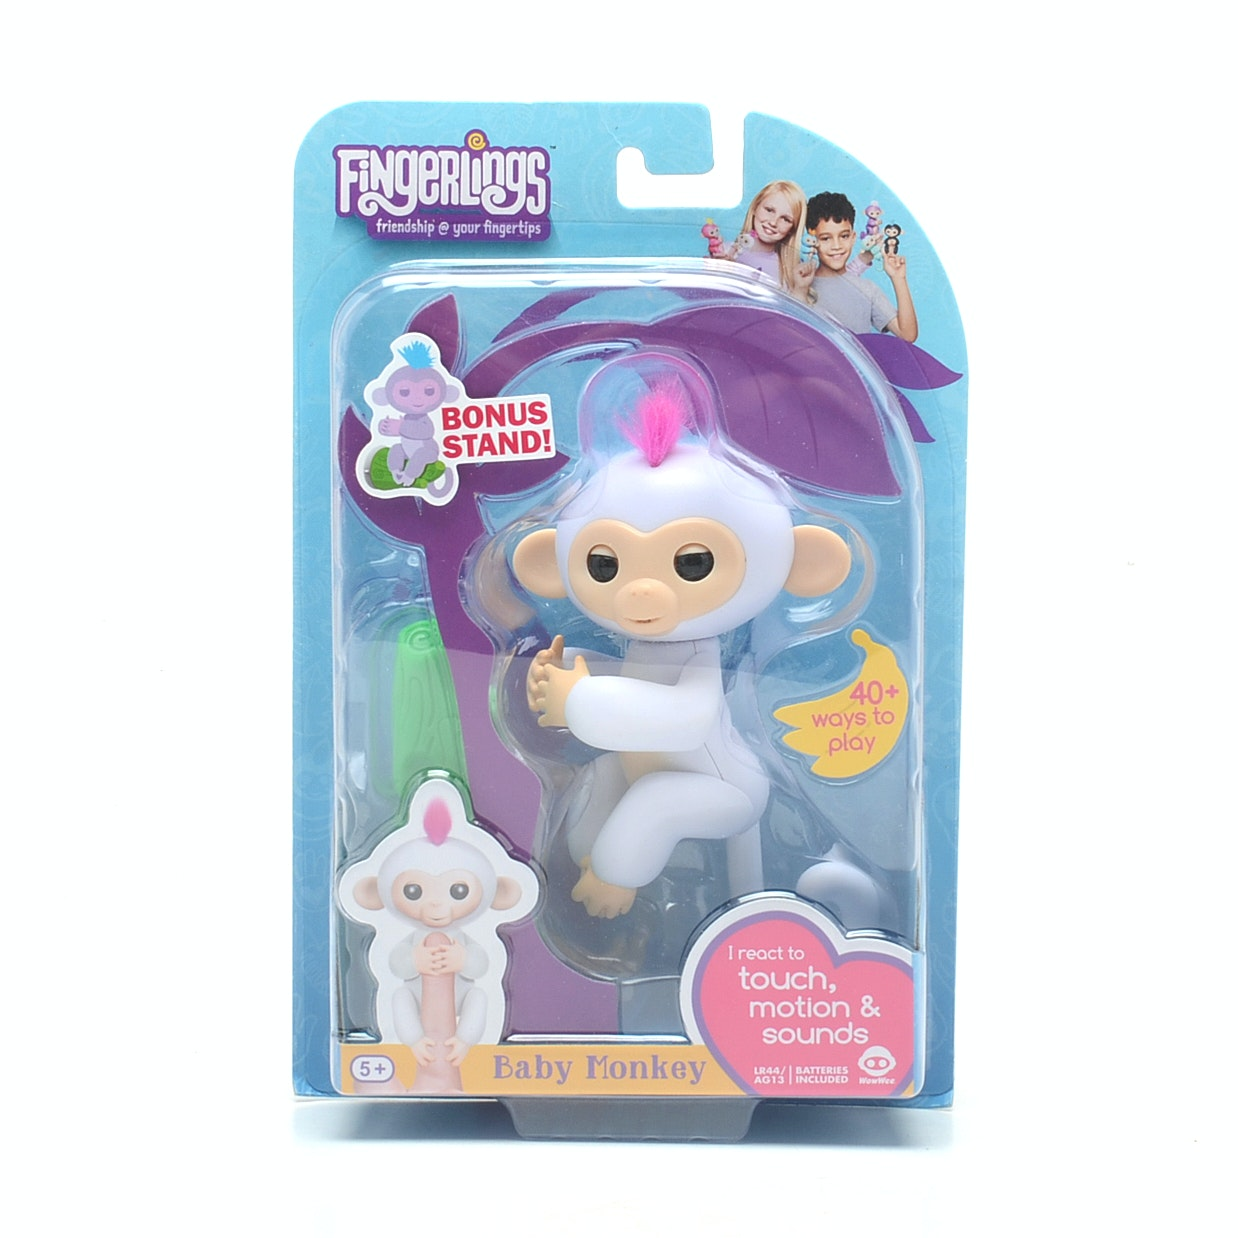 WowWee Fingerlings Sophie White Baby Monkey Interactive Toy